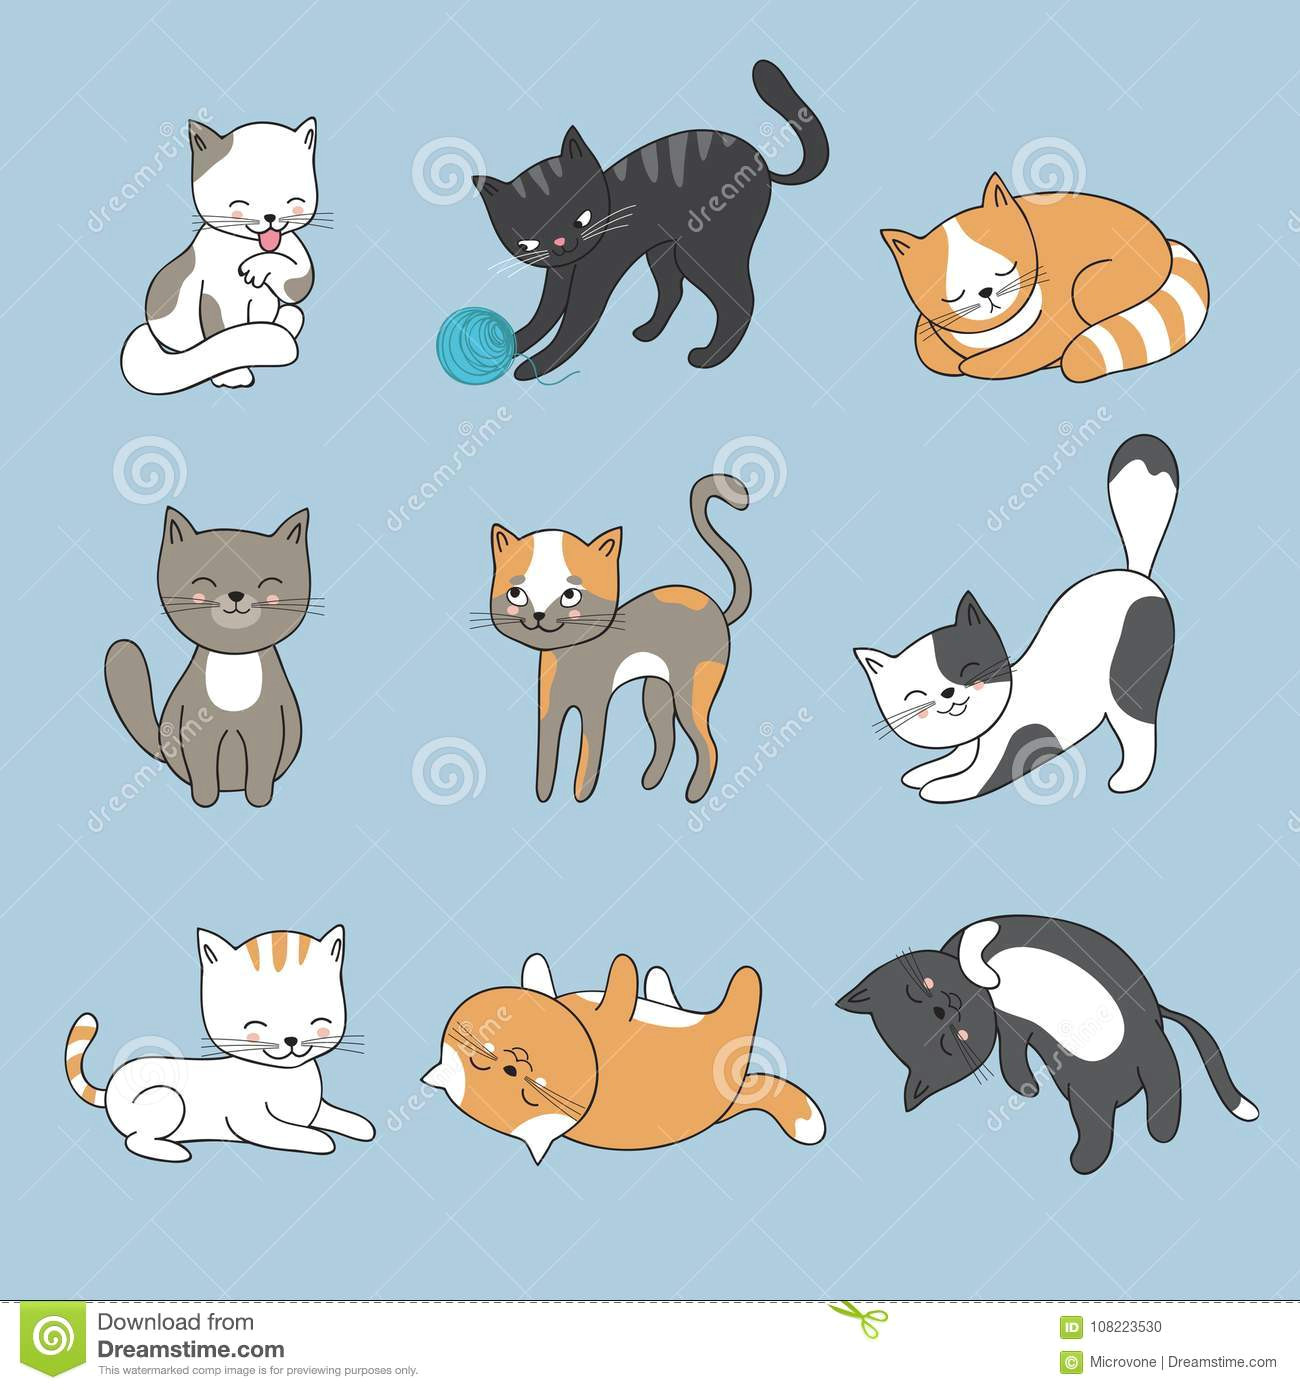 Drawing Cartoon with Illustrator Hand Drawing Cute Cats Vector Kitty Collection Stock Vector